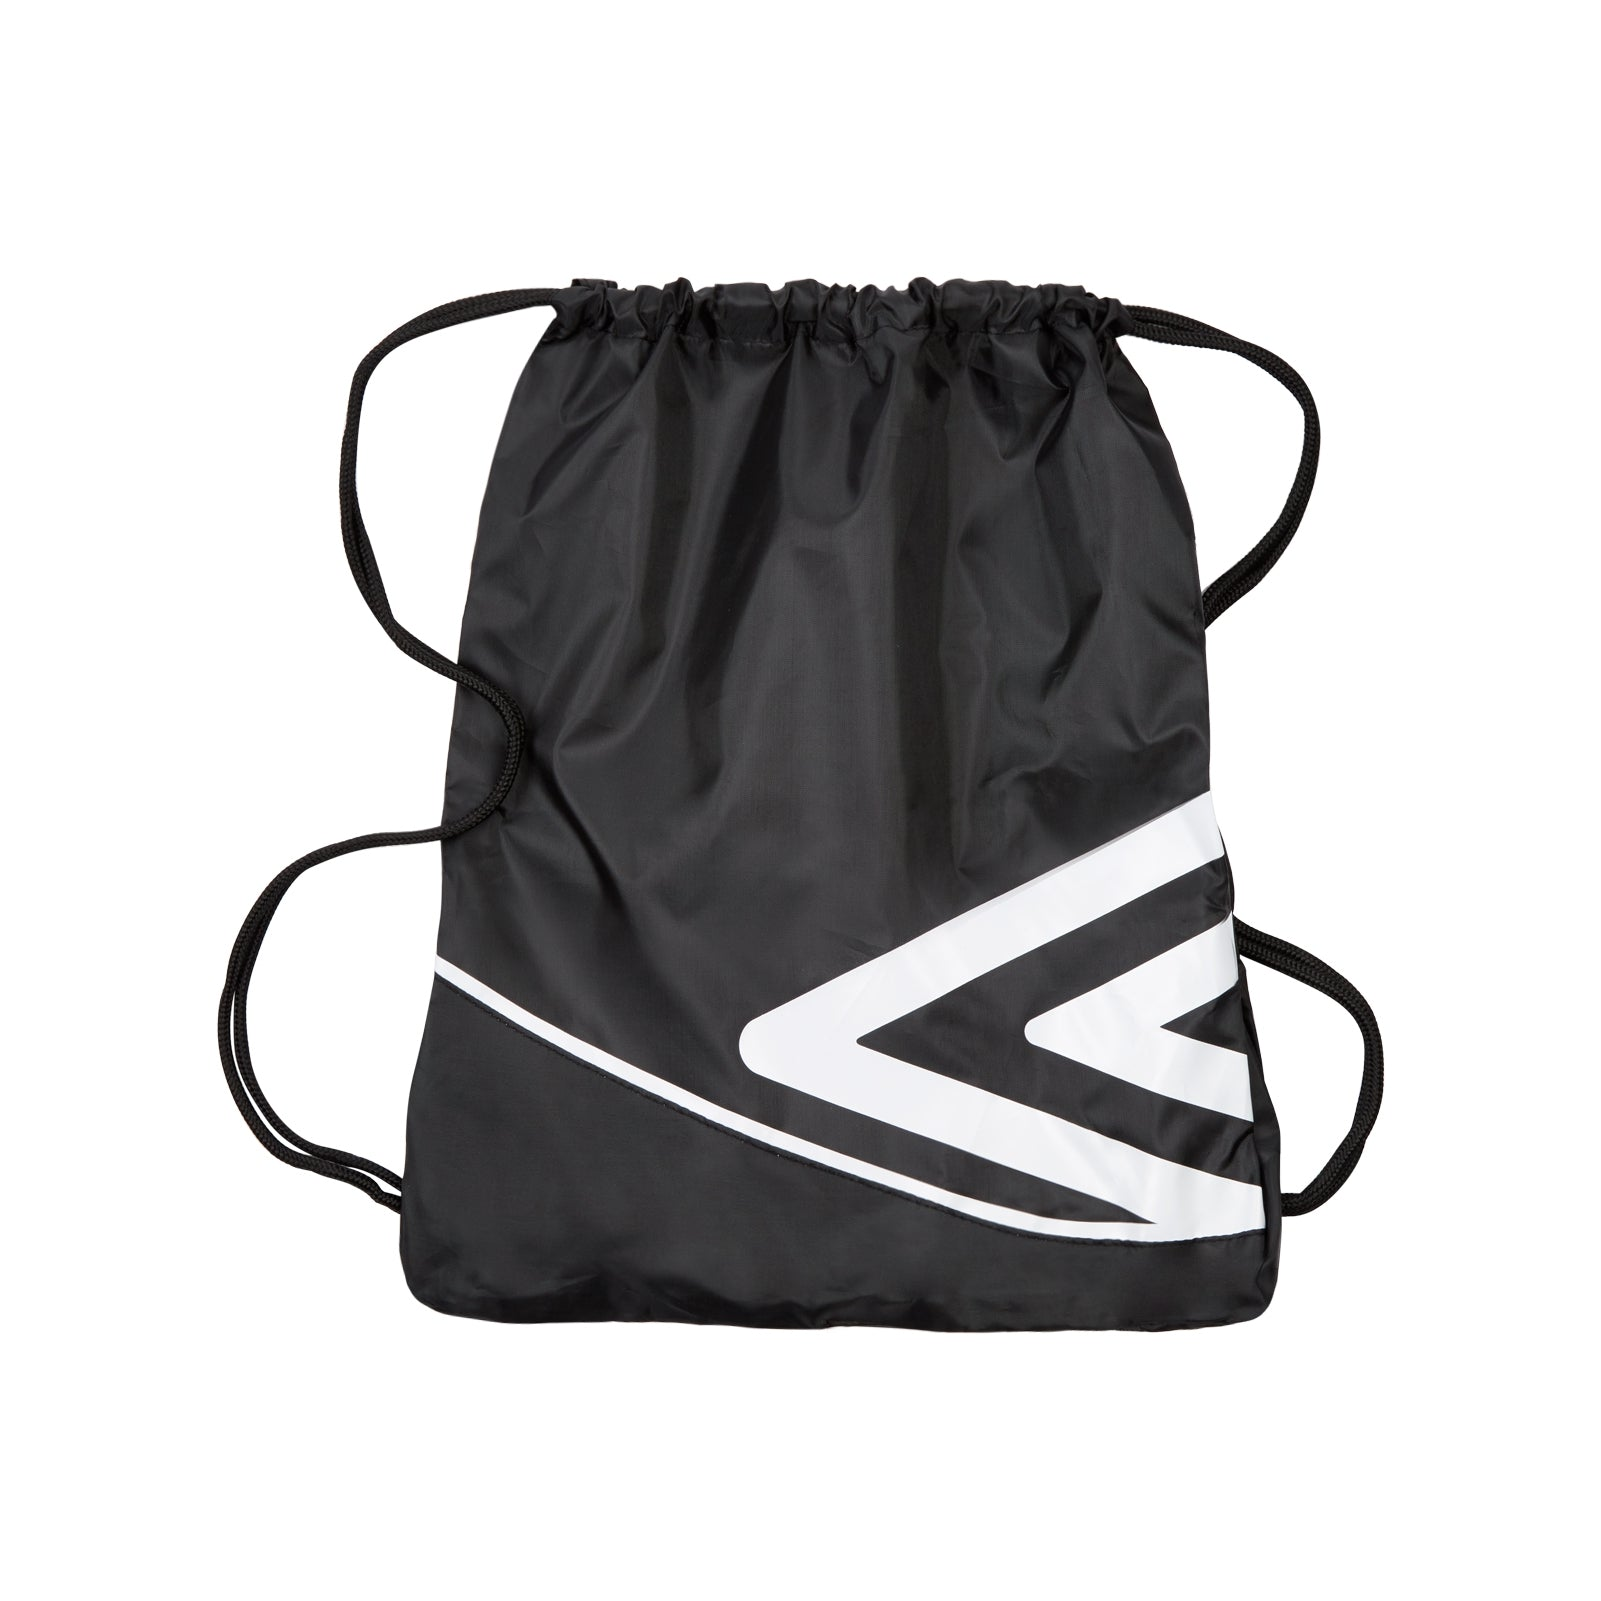 Umbro Pro Training Gymsack - Black/White